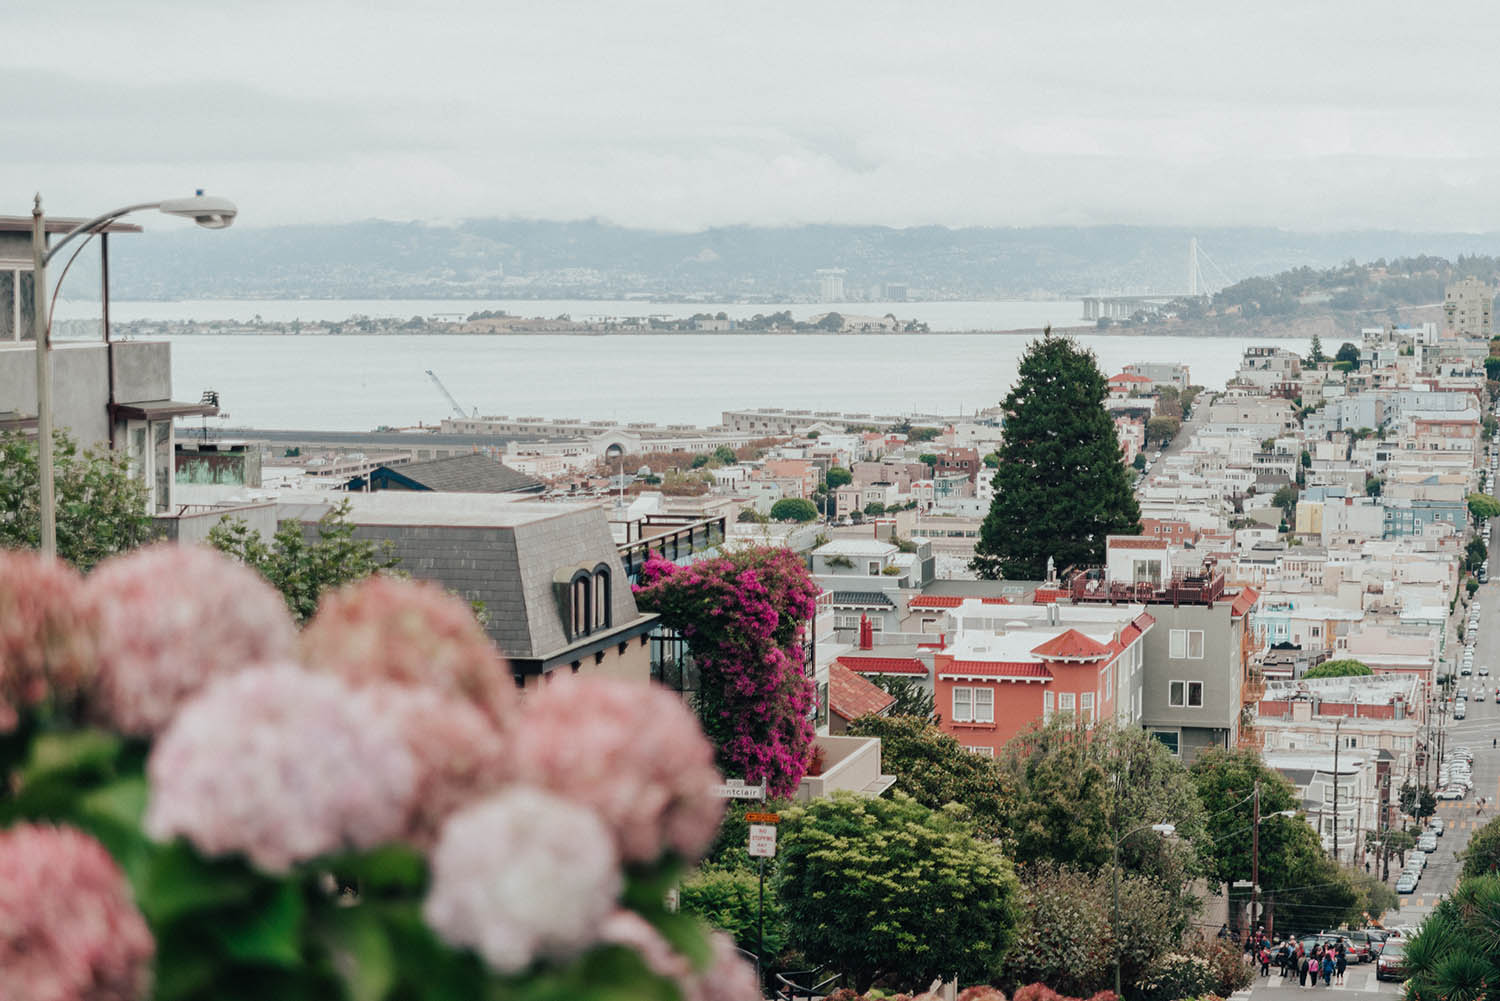 Instagram-Worthy Spots in San Francisco: Lombard Street